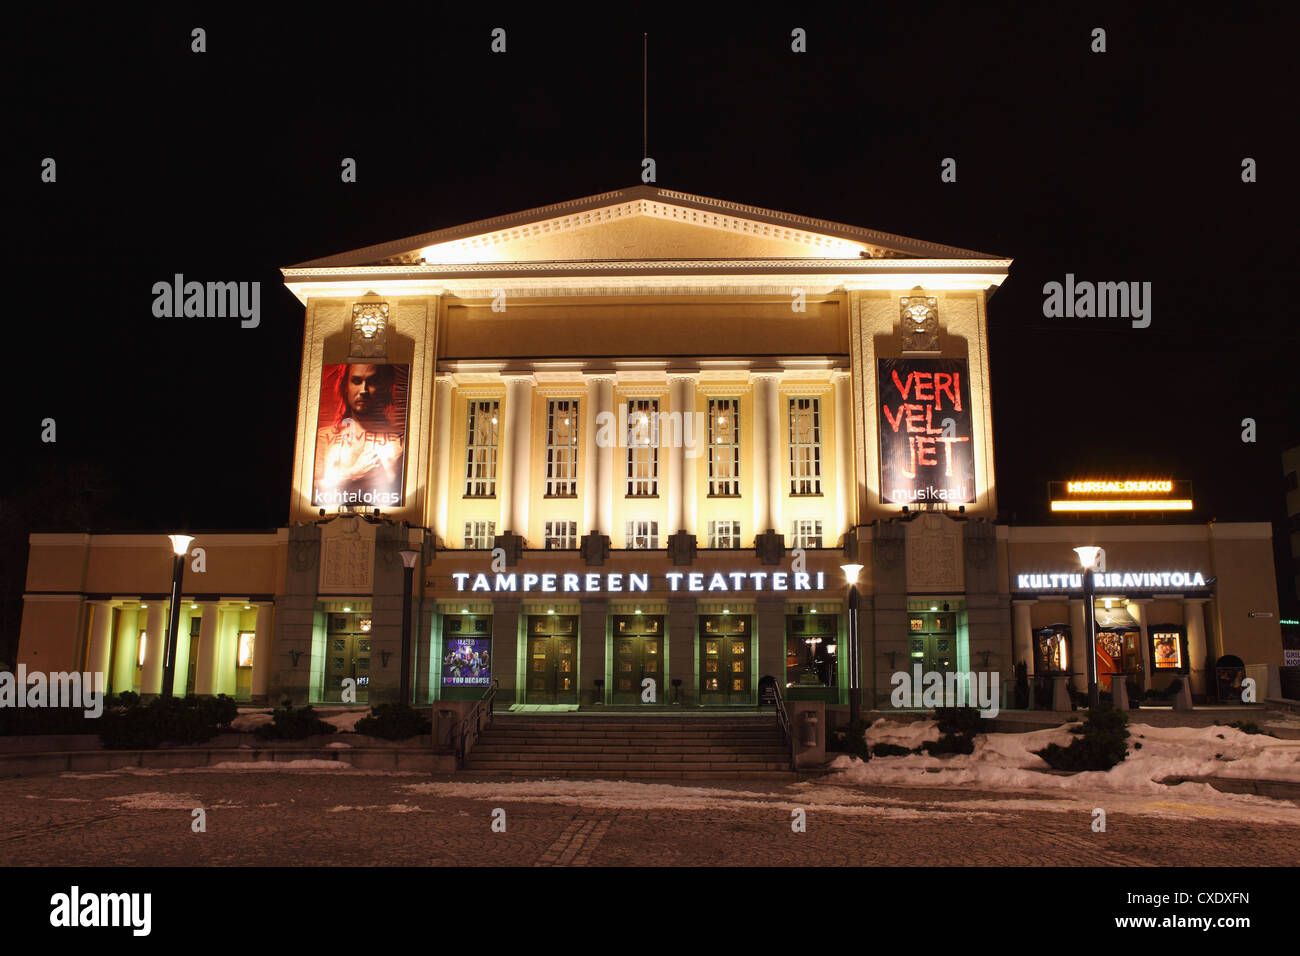 Facade of Tampere's Theatre (Tampereen Teatteri) on the Central Square (Keskustori), at night, in Tampere, Pirkanmaa, - Stock Image